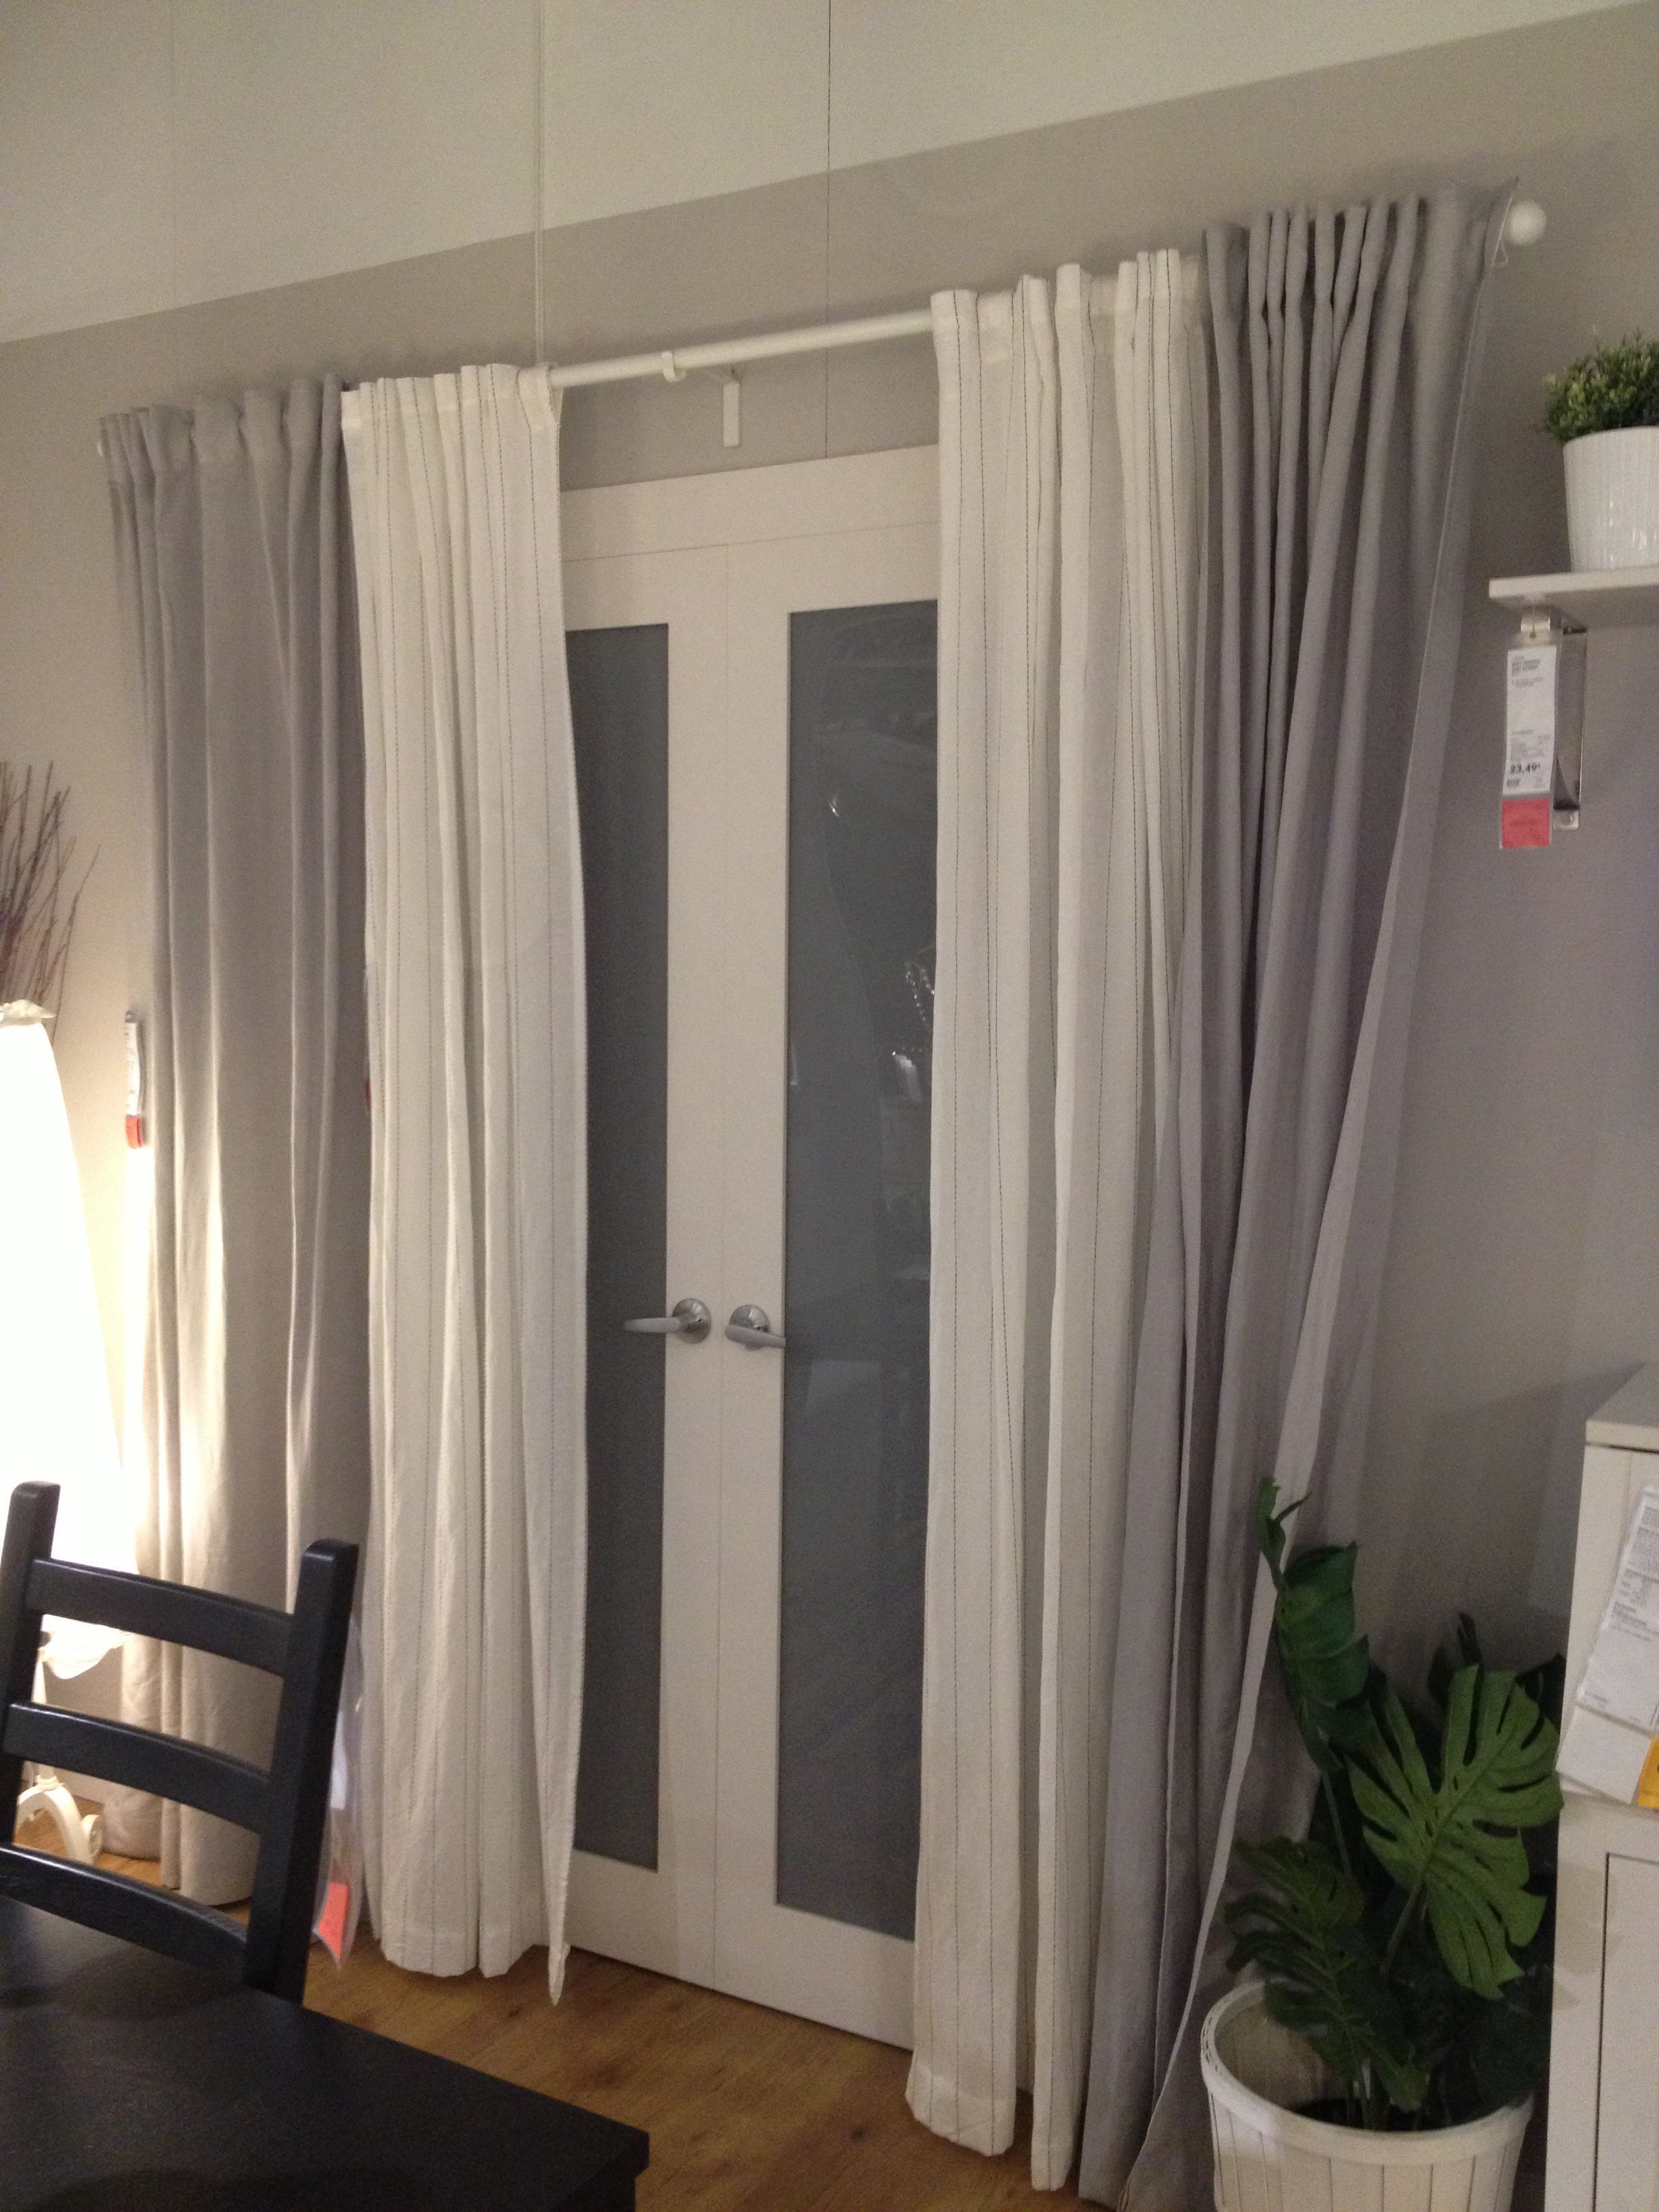 Backpatio Door Curtains Let Sunlight In During The Day Keep